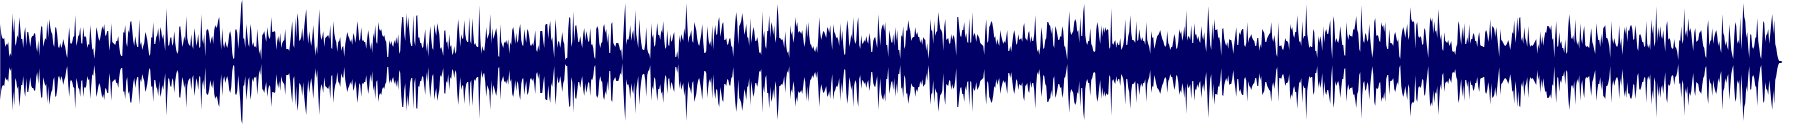 waveform of track #69713